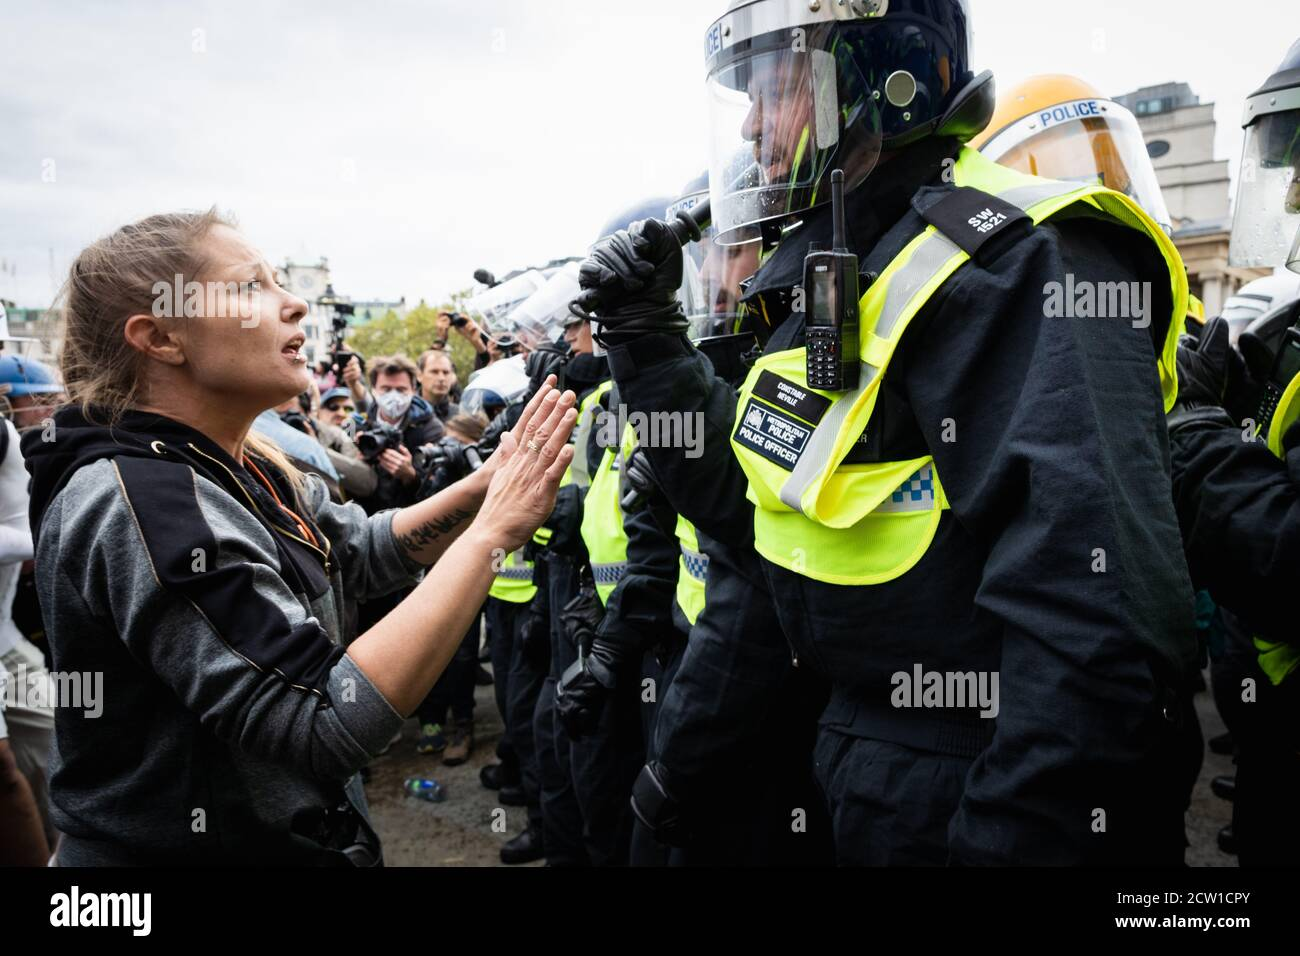 London, UK. 26th Sep, 2020. A women protester tryÕs to talk to the the MET police after they moved in on the Unite for Freedom rally after alleged reports they had broke the risk assignment arranged to carry out the rally. Emergency legislationÊknown as theÊCoronavirus Act 2020Êhas been introduced by the governmentÊto help theÊcountry cope with the demands caused by the coronavirus outbreak. Credit: Andy Barton/Alamy Live News Stock Photo